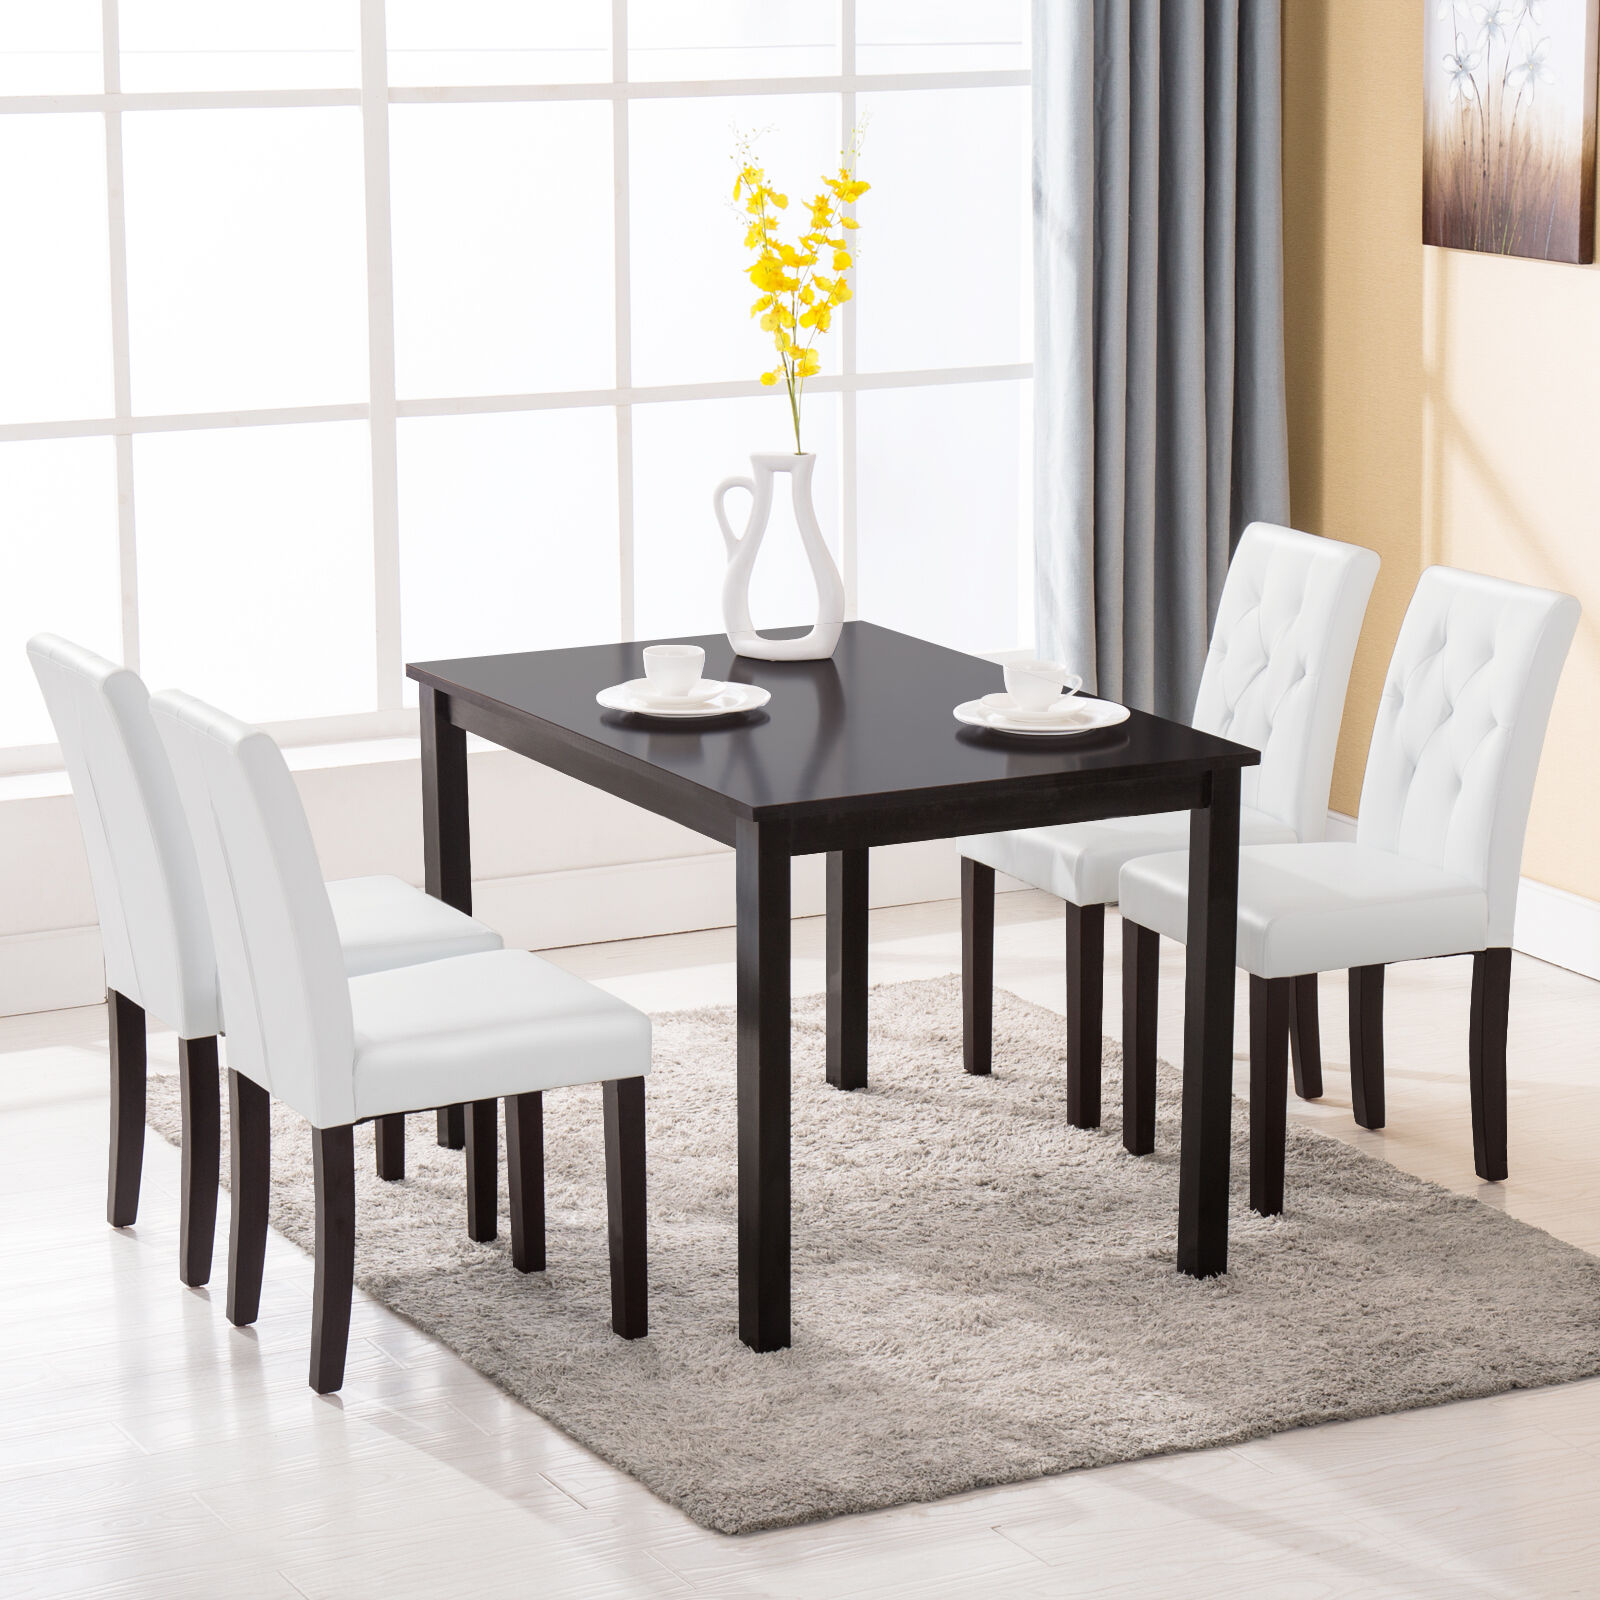 Breakfast Set Table: 5 Piece Dining Table Set 4 Chairs Room Kitchen Dinette